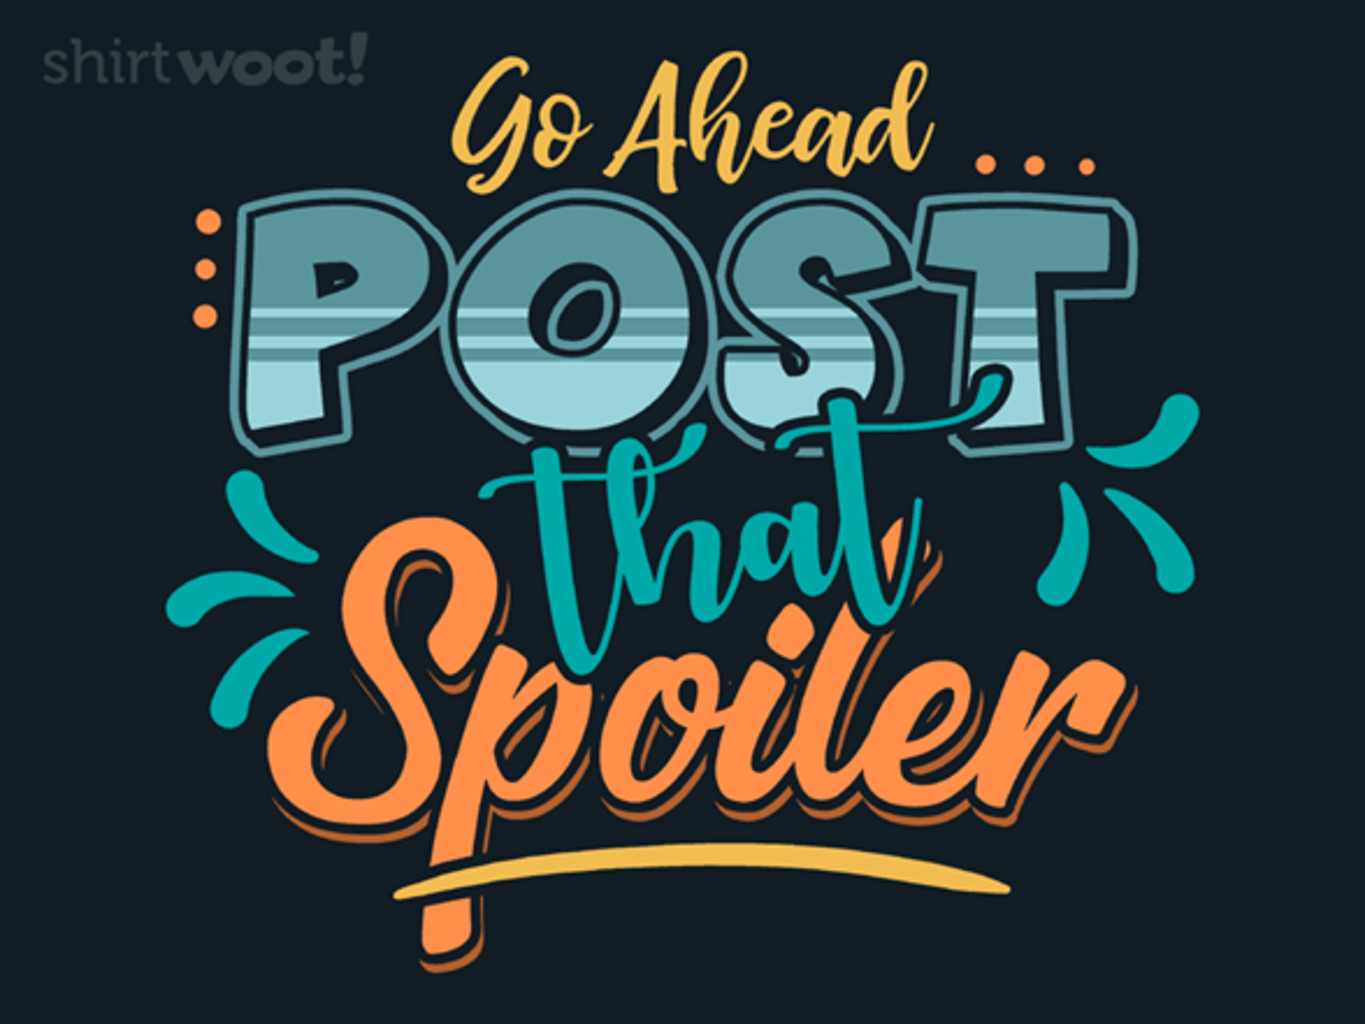 Woot!: Post That Spoiler